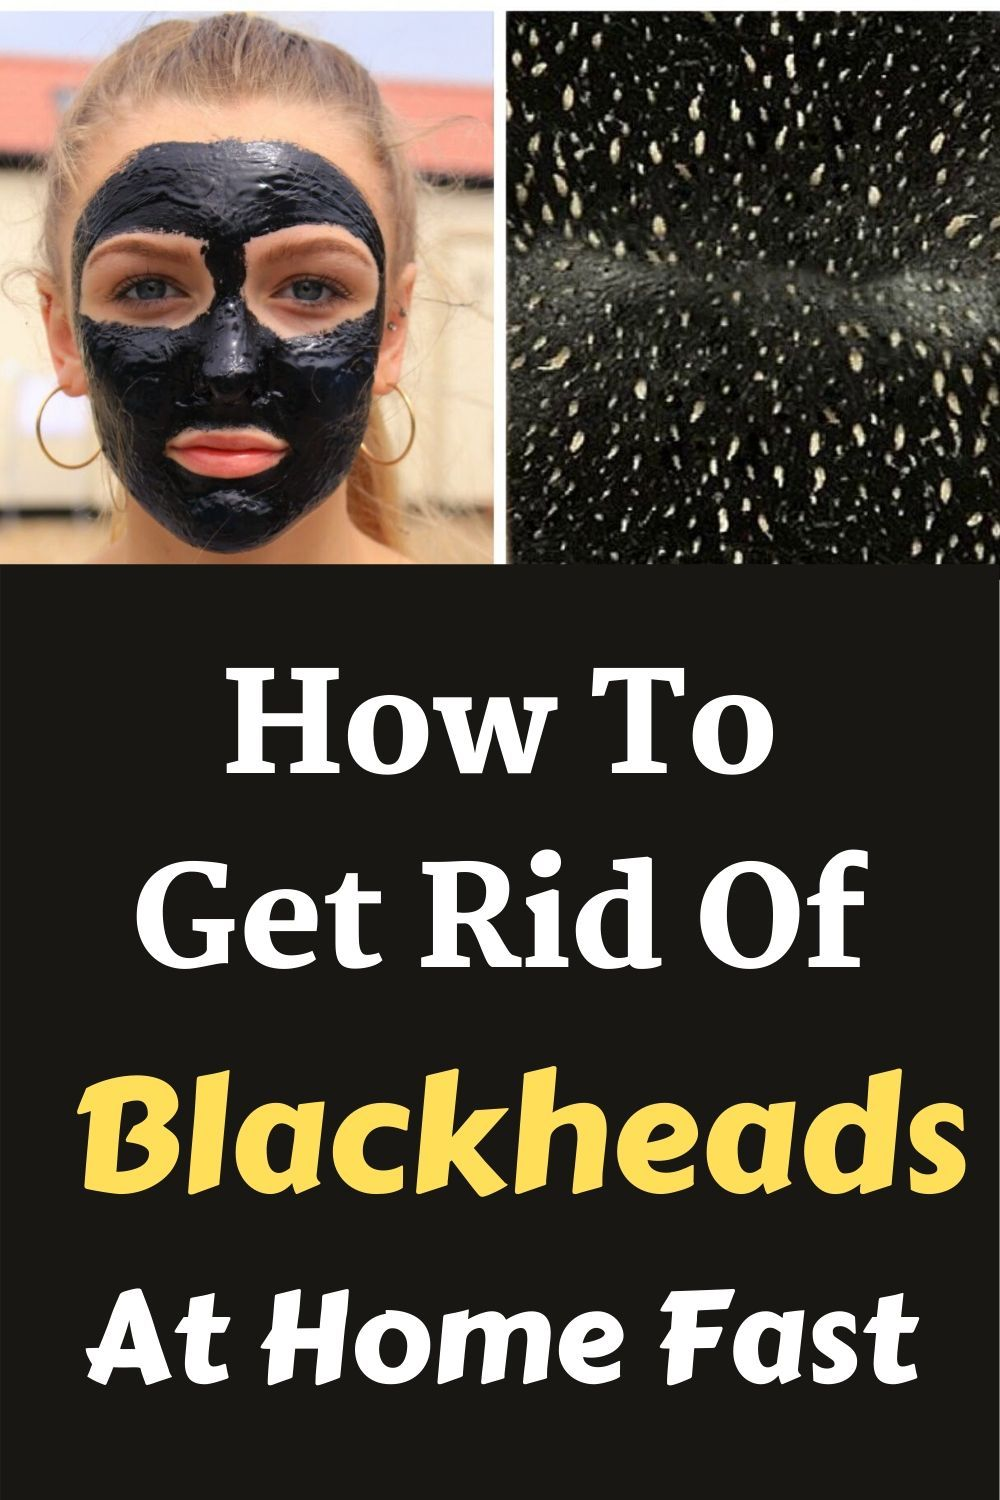 How to get rid of blackheads at home fast 7 home